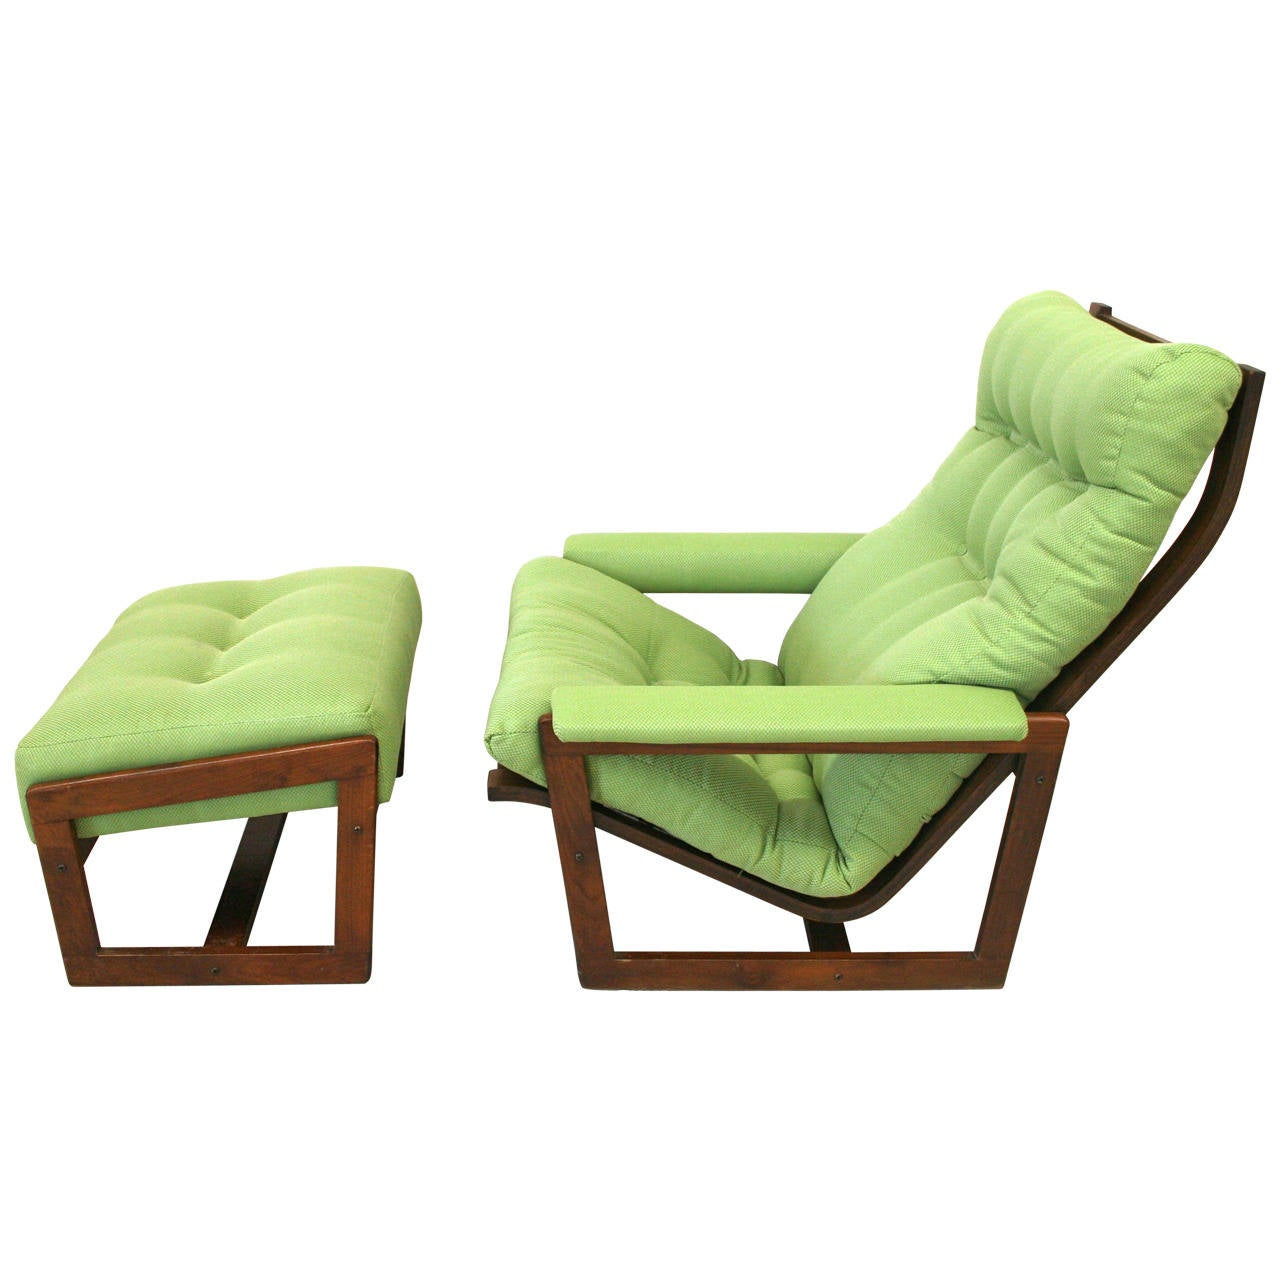 Child Porch Swing likewise Small Walk In Closet Design Ideas additionally Danish Modern Lounge Chair And Ottoman as well Mattresses Sizes Chart also English Garden Bench Outdoor. on lime green wood stain